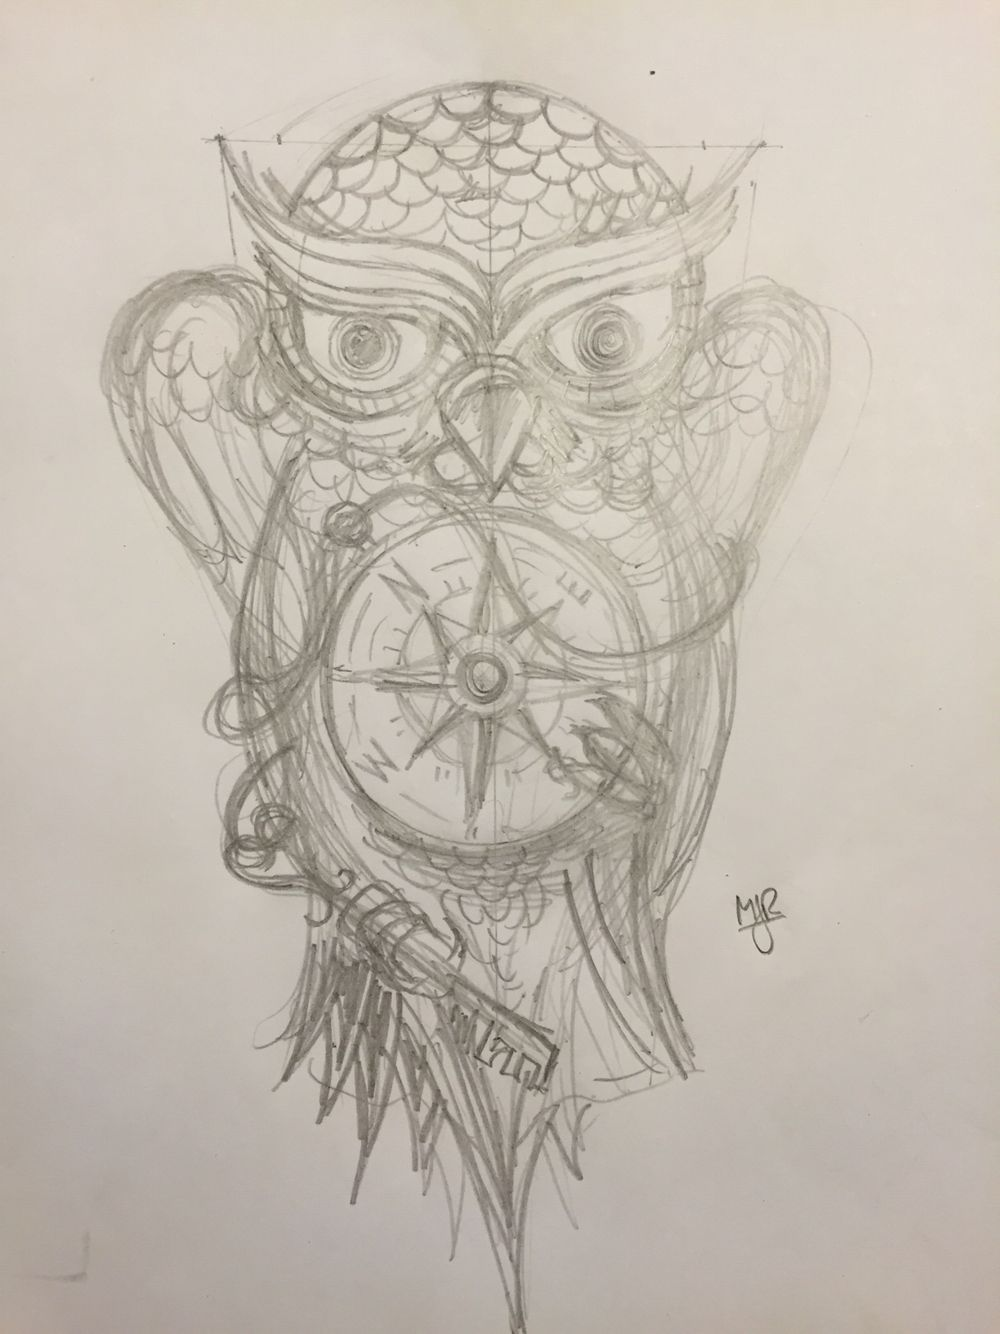 Owl Tattoo With Compass And Key Sketch By Maxjr Owl Tattoo Tattoos Floral Tattoo Sleeve